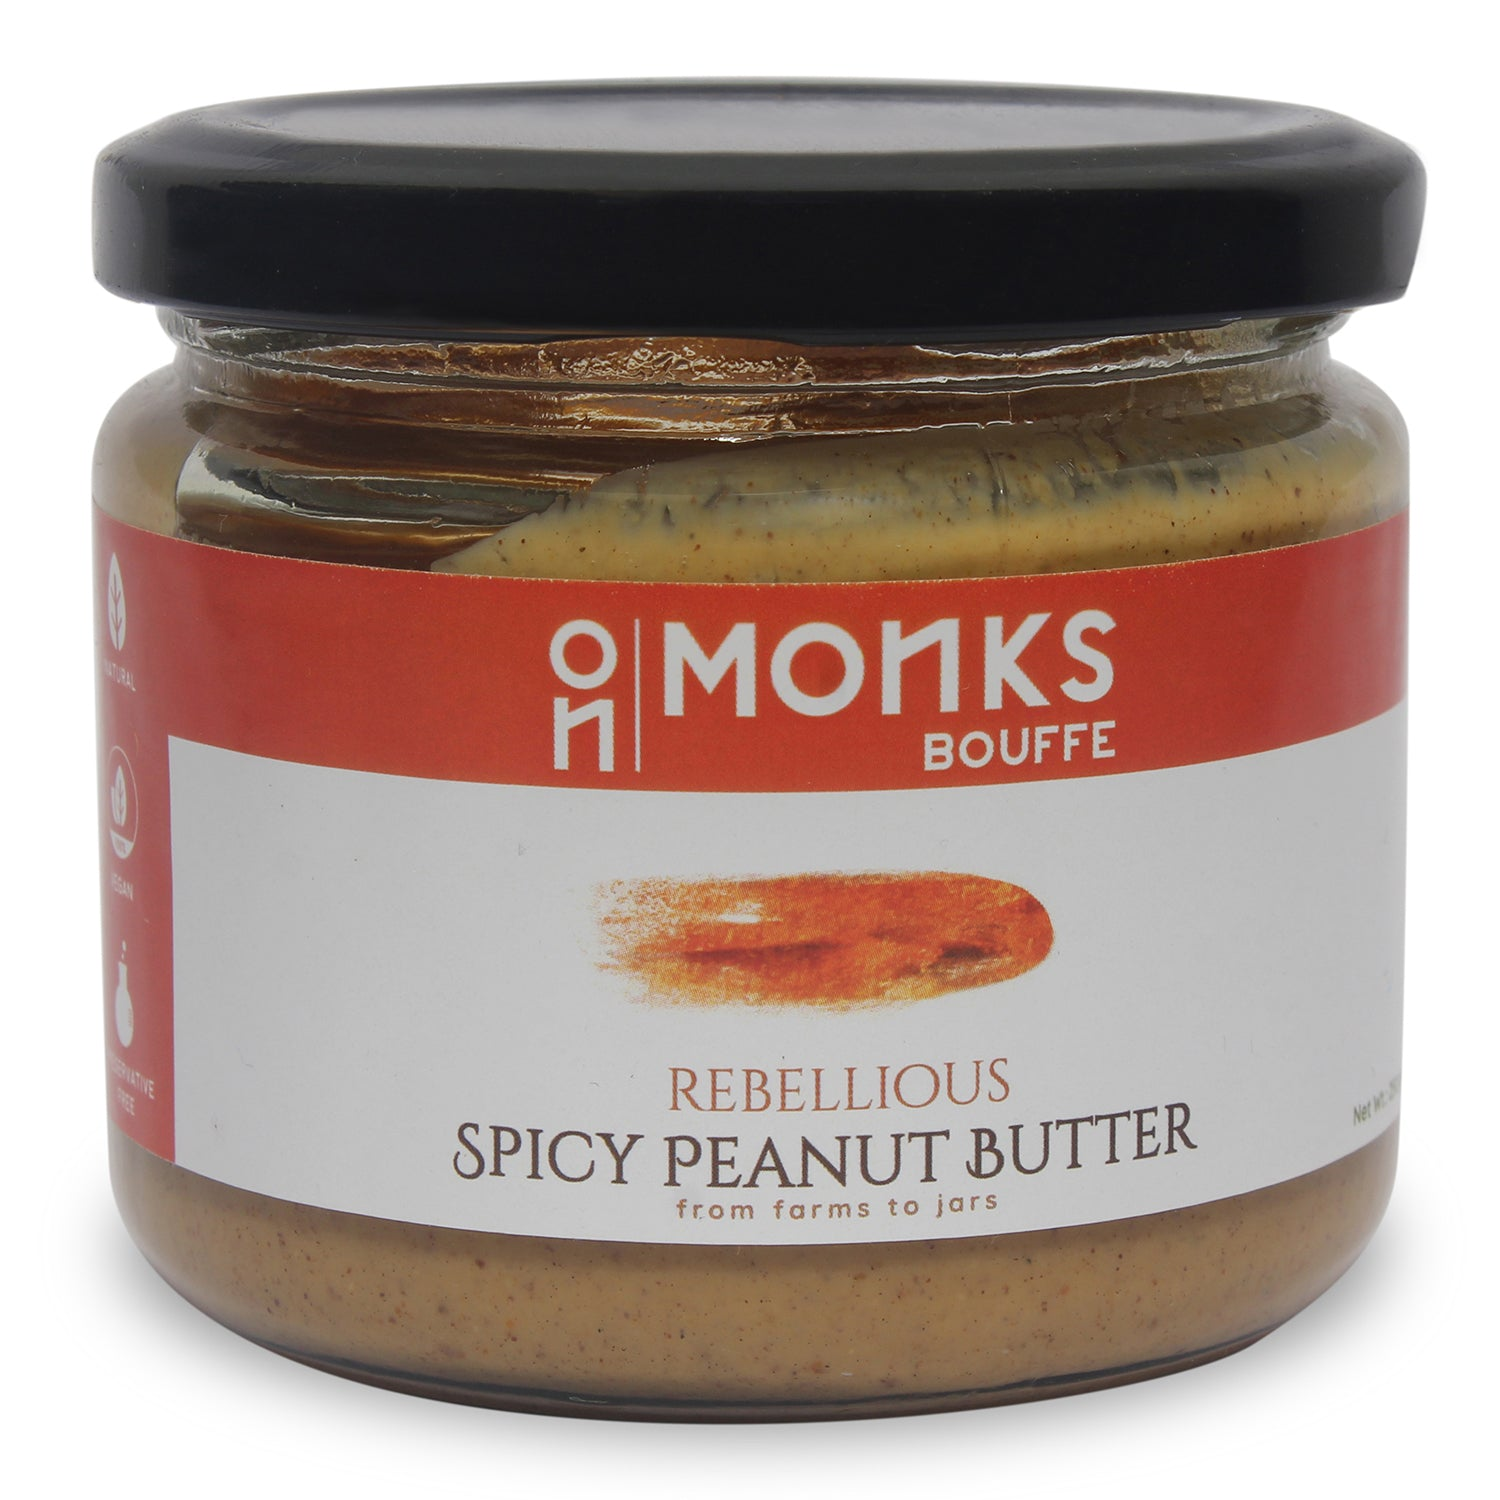 Rebellious Spicy Peanut Butter